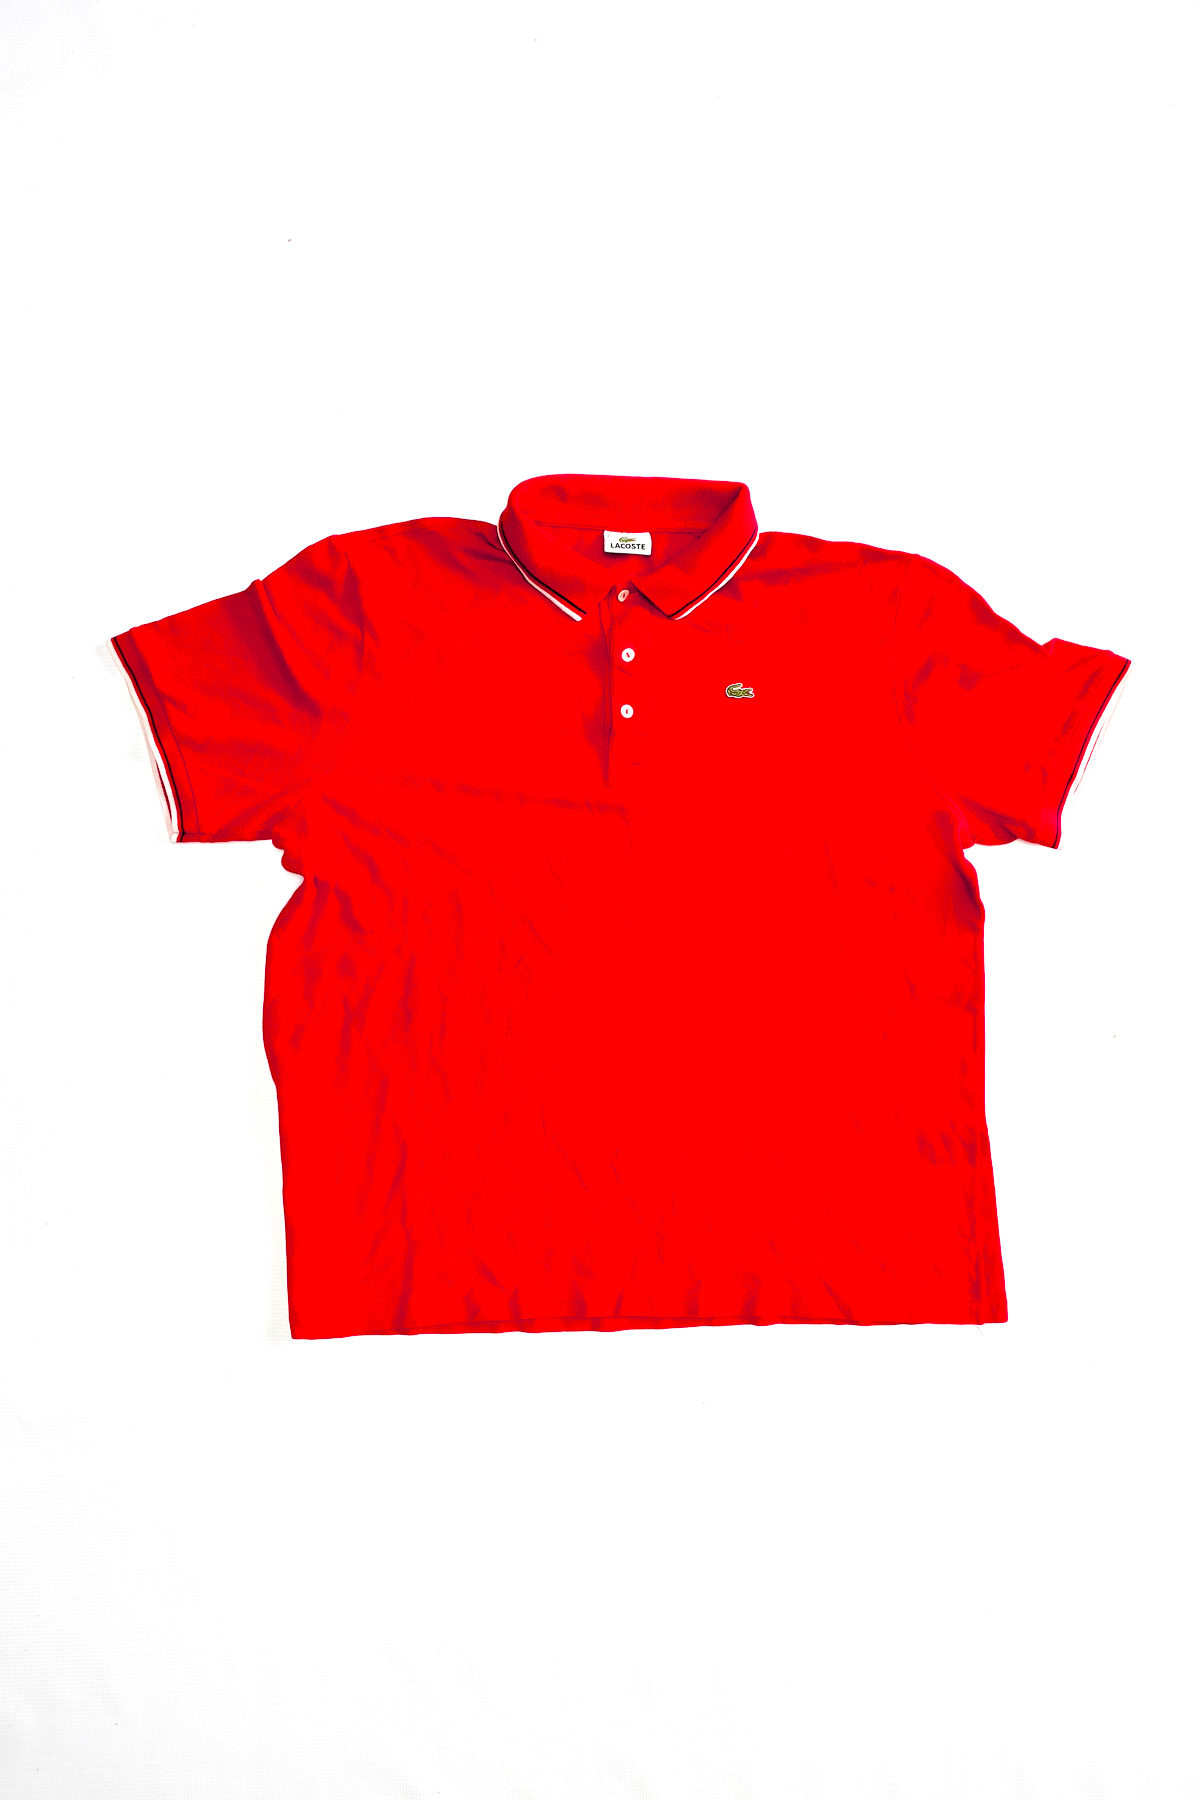 Lacoste POLO VINTAGE Red White